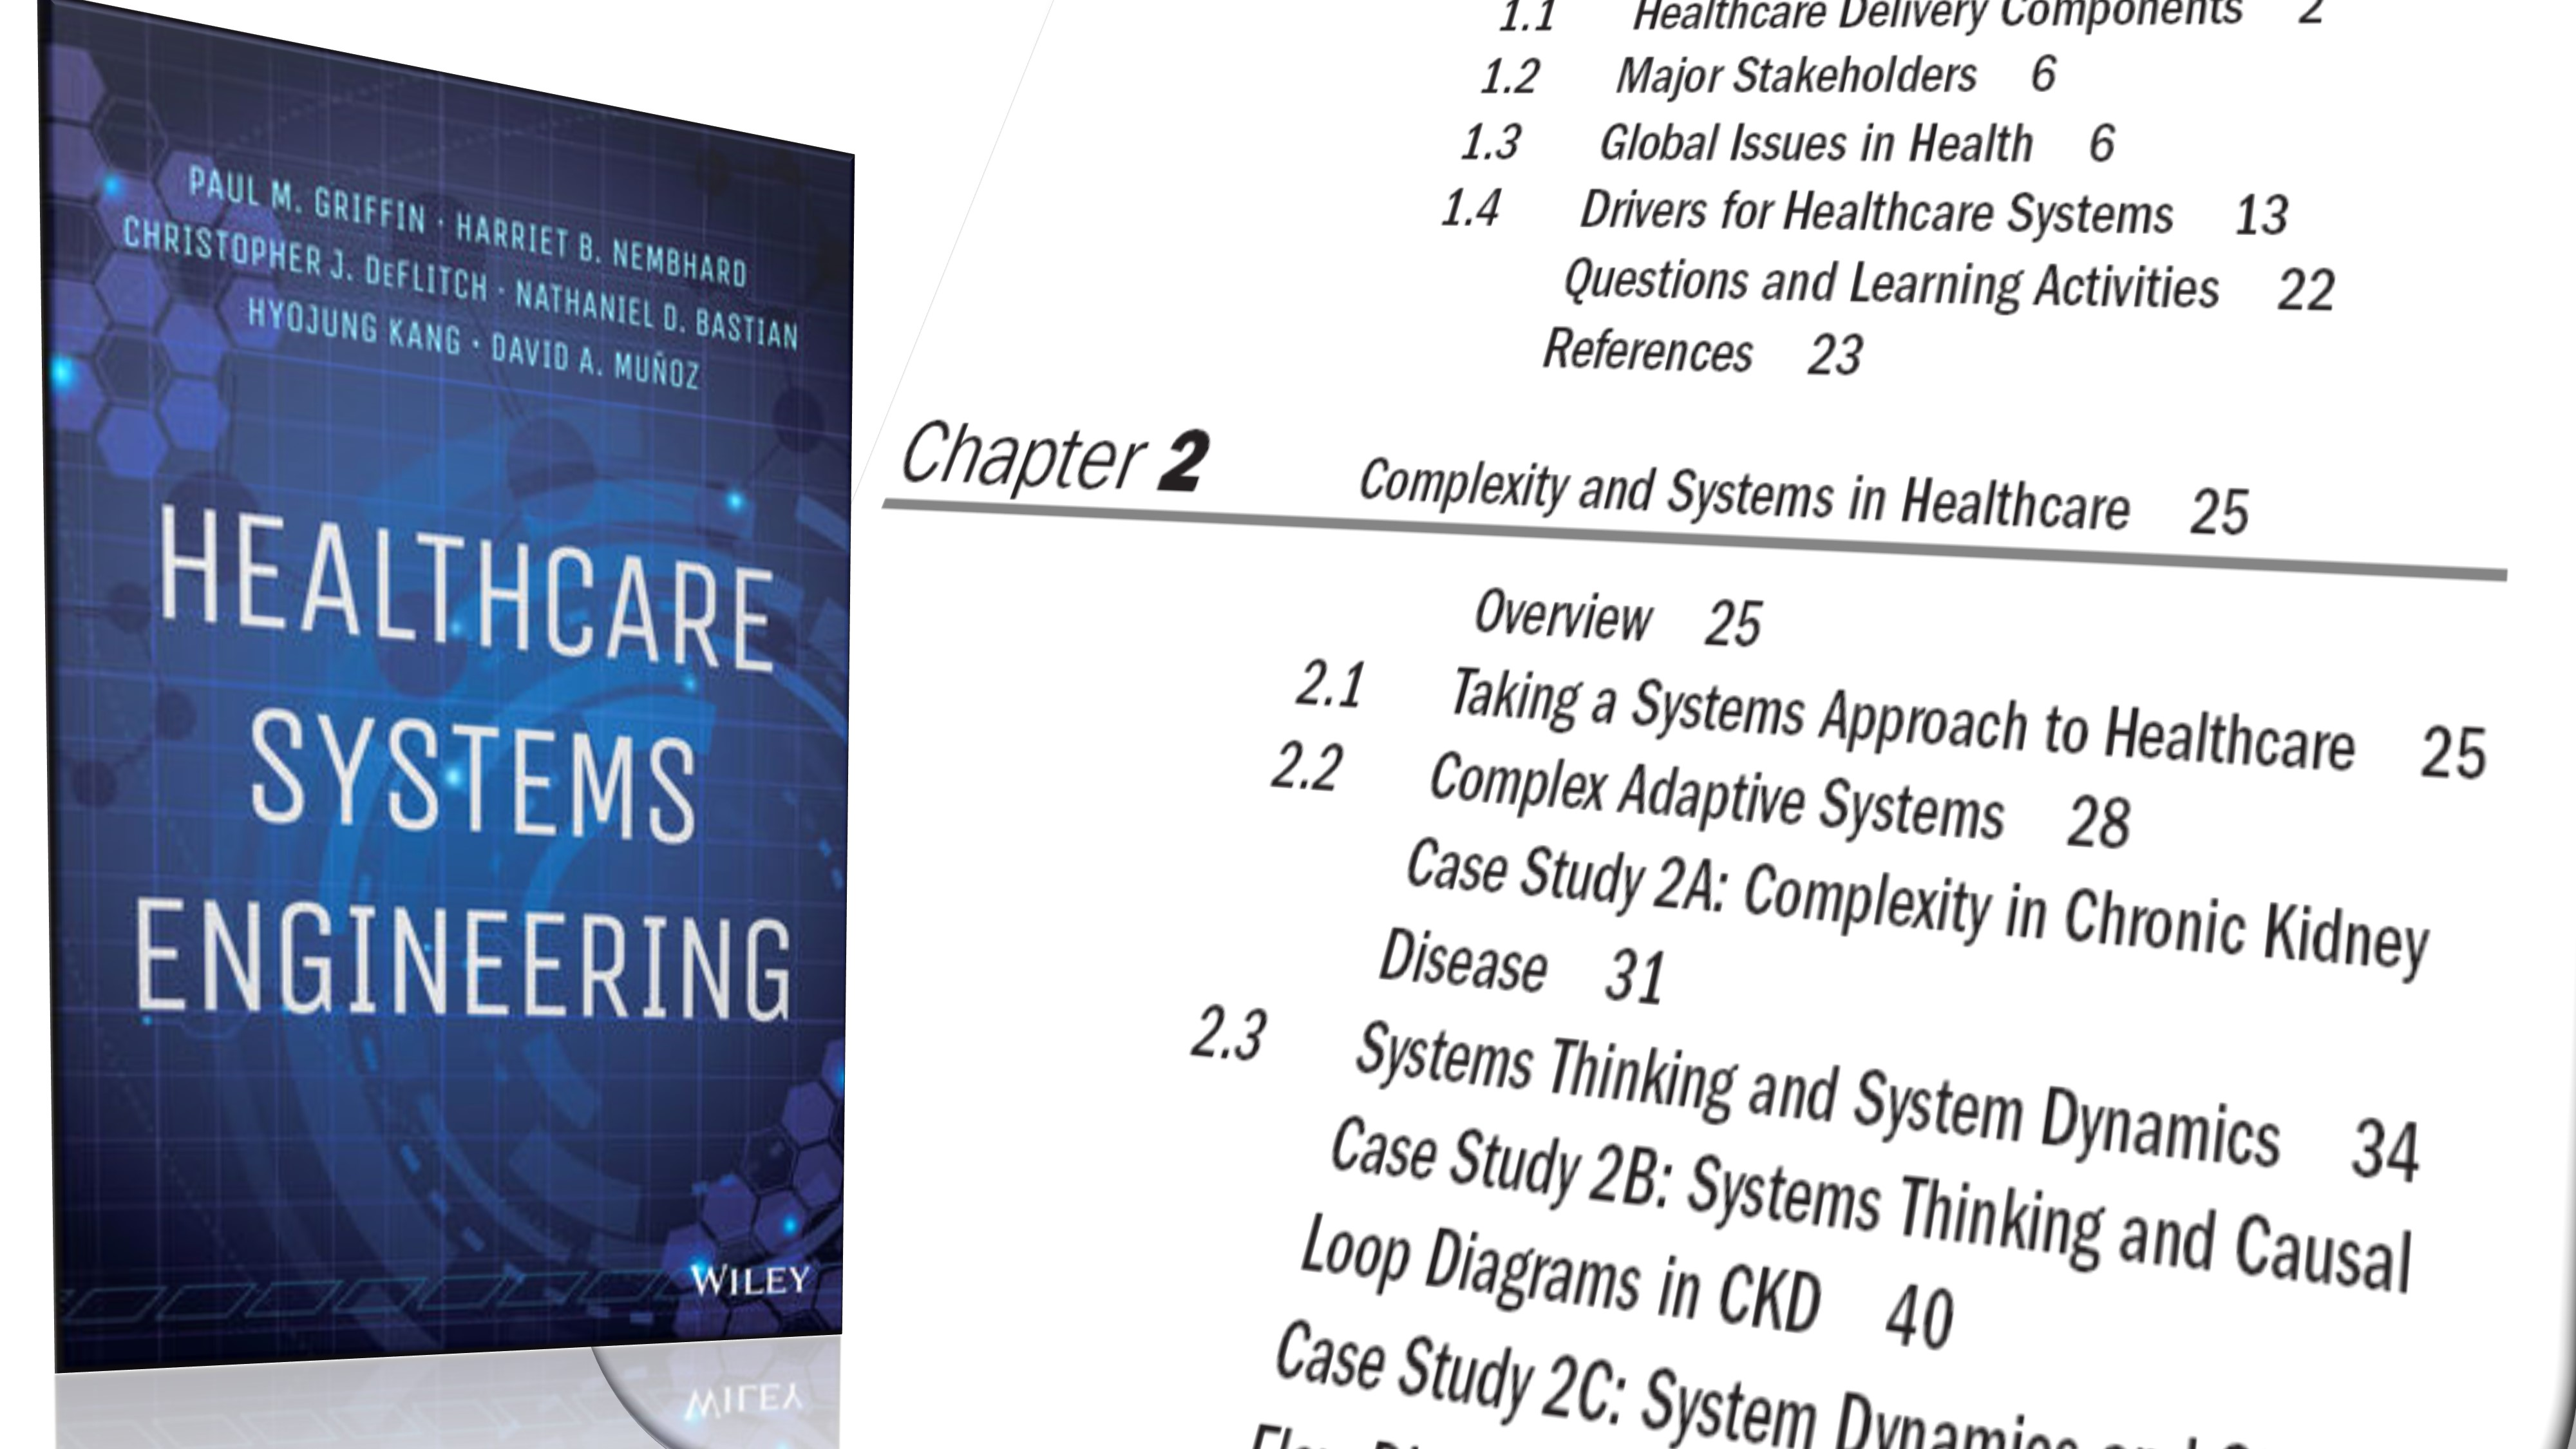 Dr  Nembhard has co-authored a new book on healthcare delivery